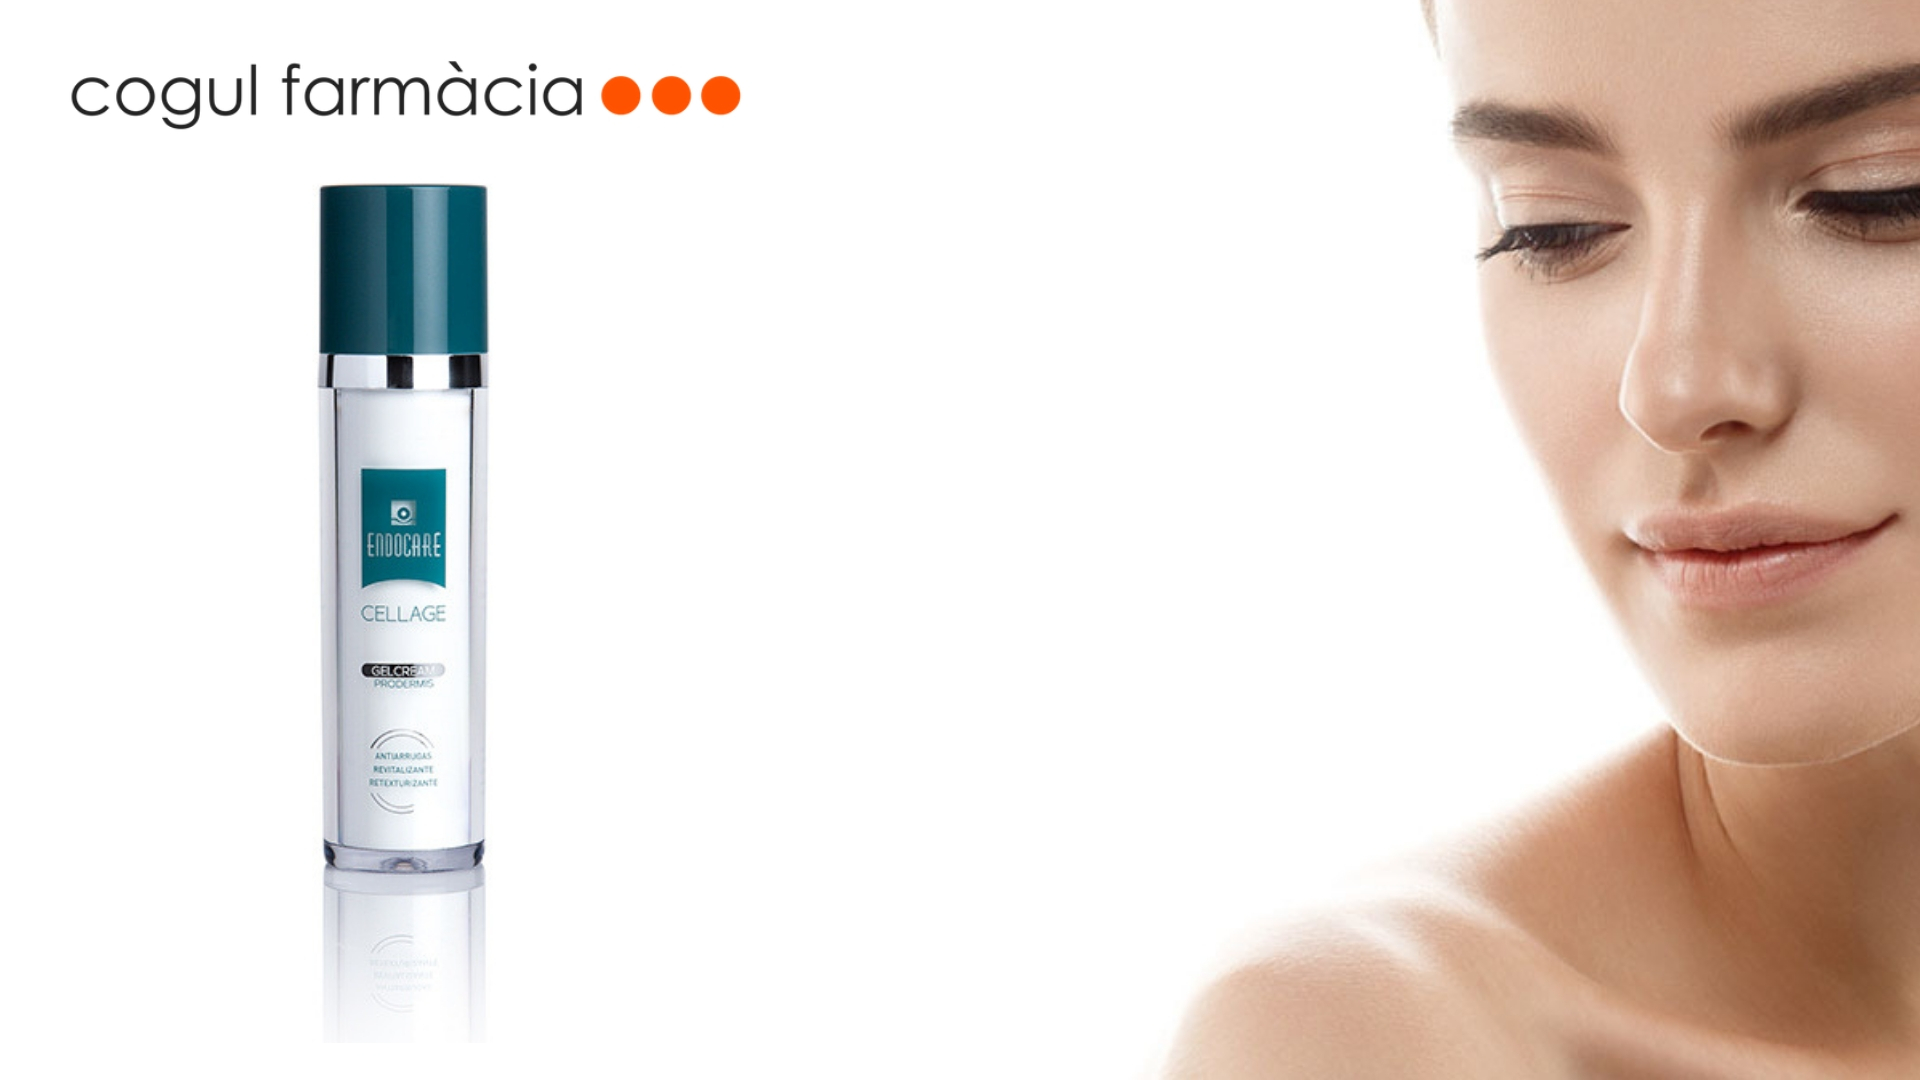 promotions ANTIAGING farmacia cogul